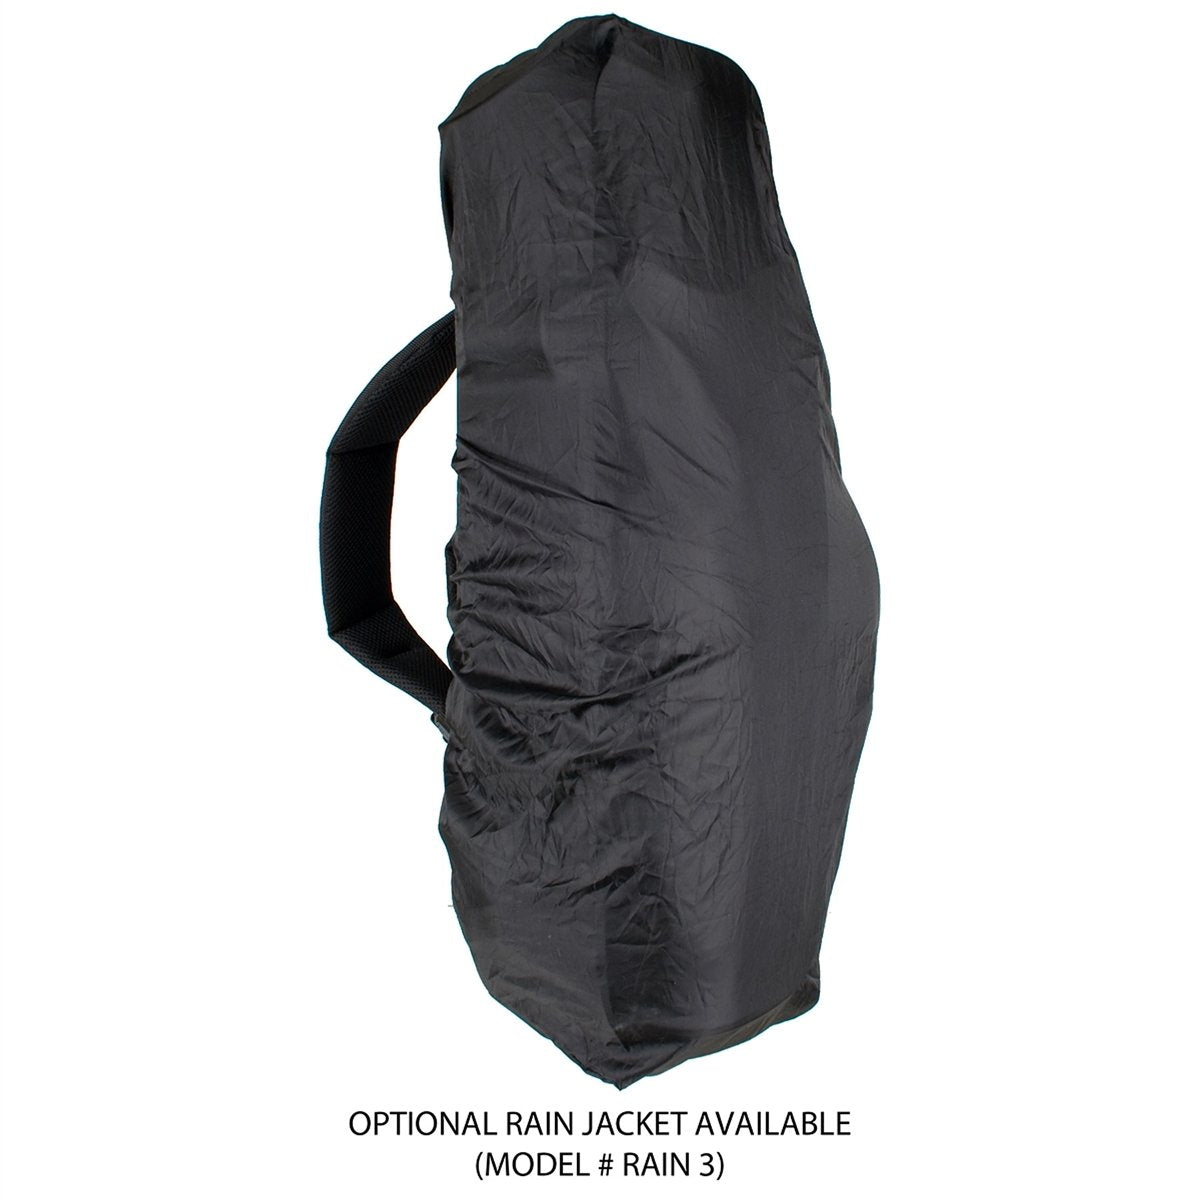 Protec - Rain Jacket for Cases-Case-Protec-Contoured Tenor Saxophone Cases-Music Elements